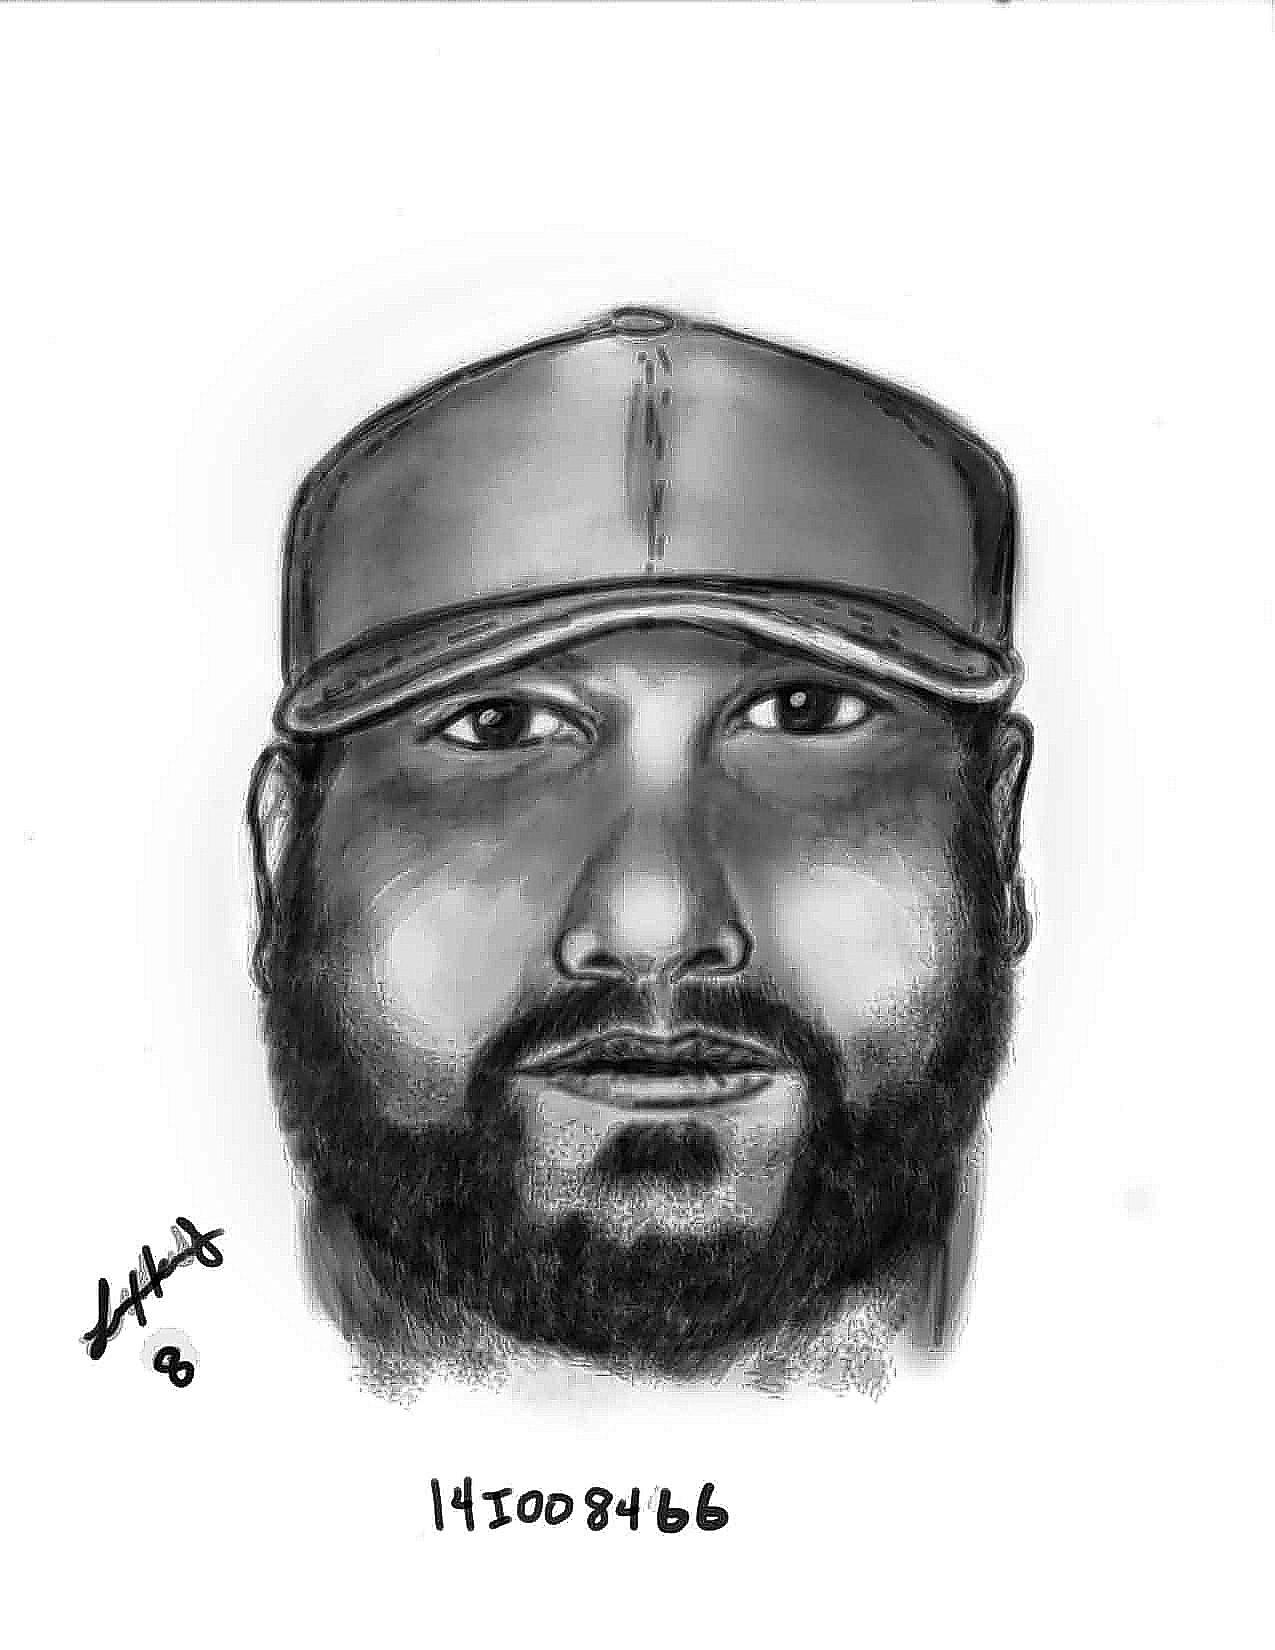 Sketch of suspect described in case of girl being asked for sex by unknown driver in Kissimmee.